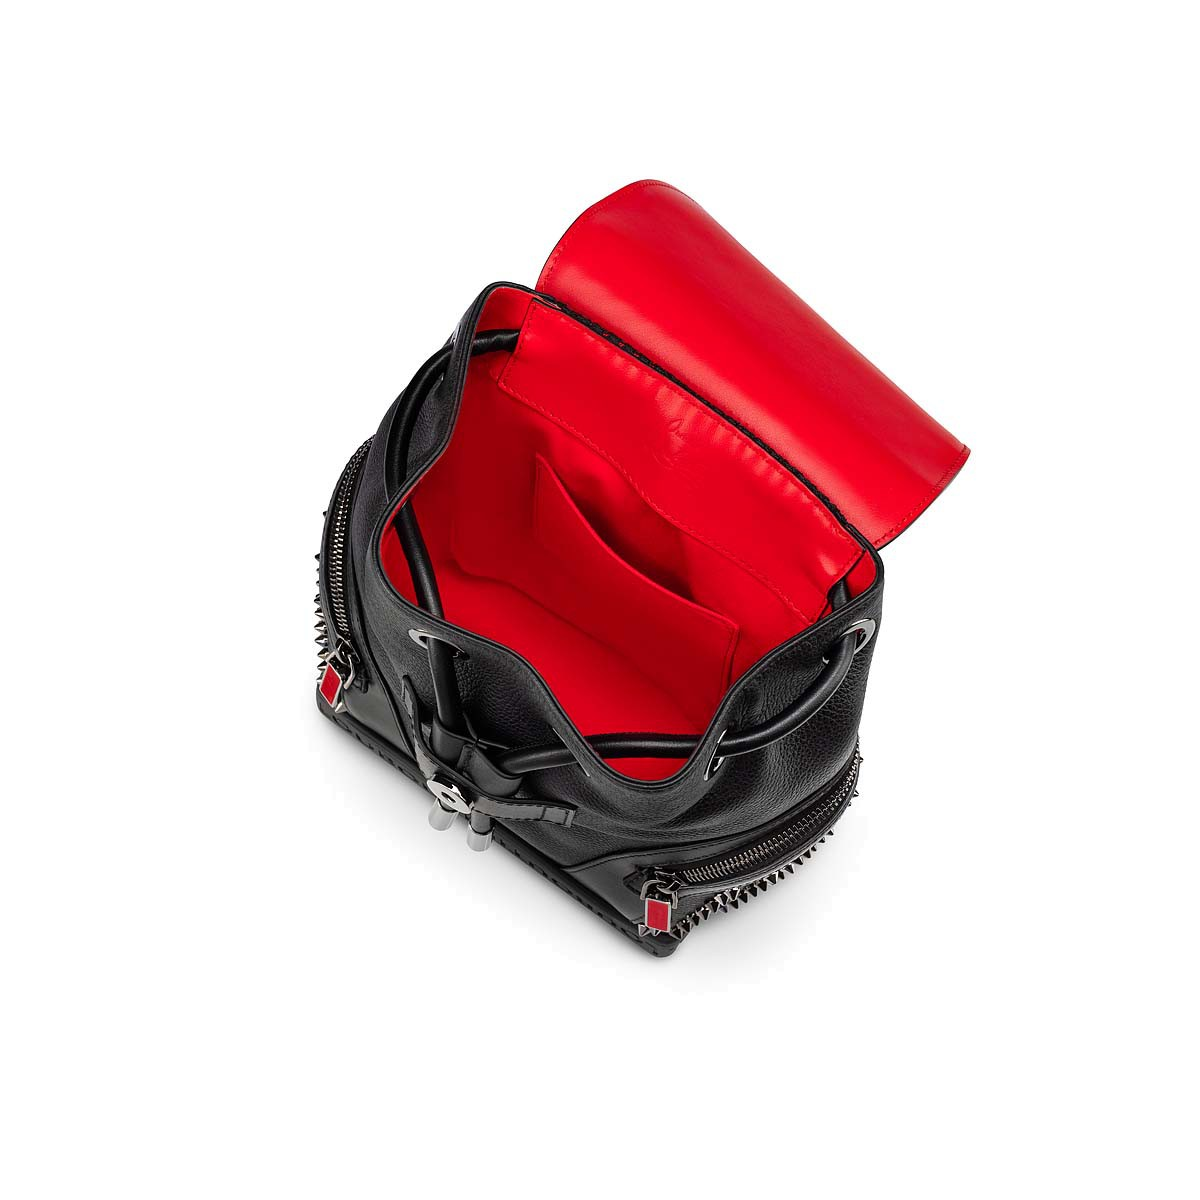 Bags - Explorafunk S Small Backpack - Christian Louboutin